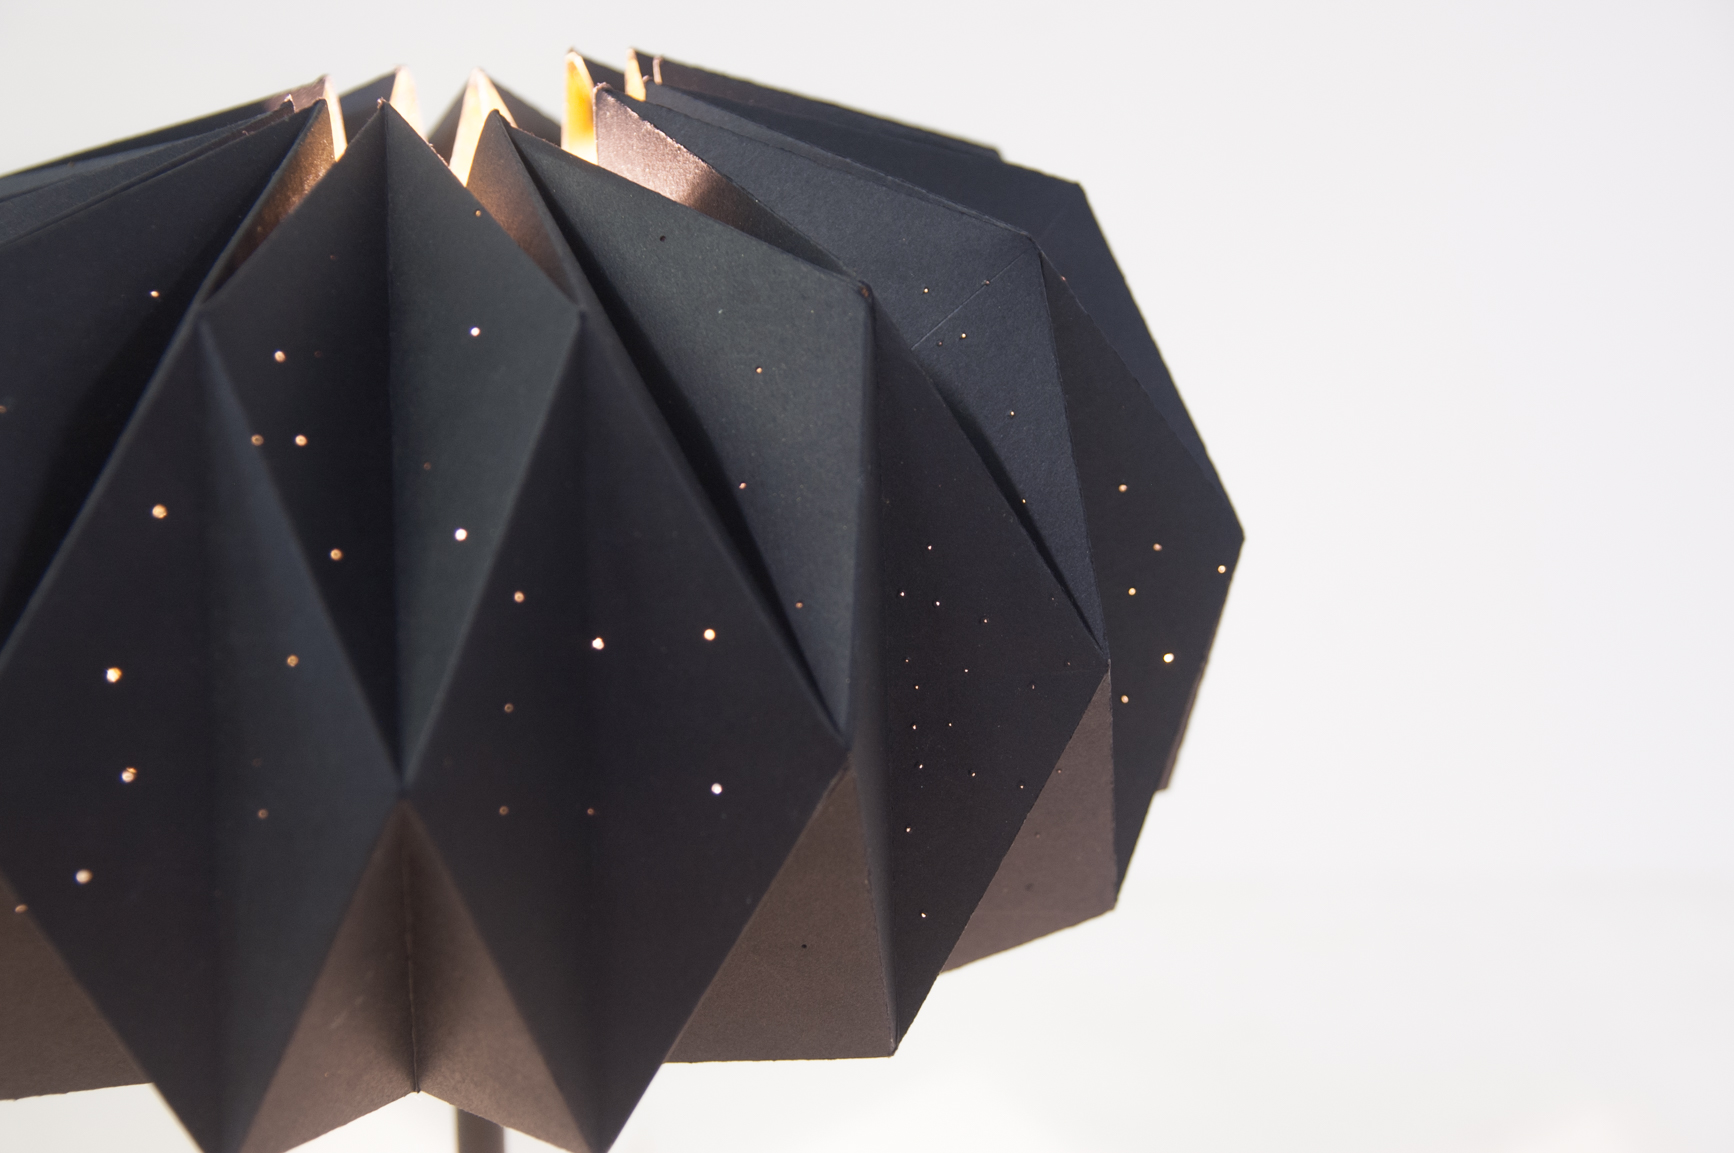 constellation origami lamps detail-2